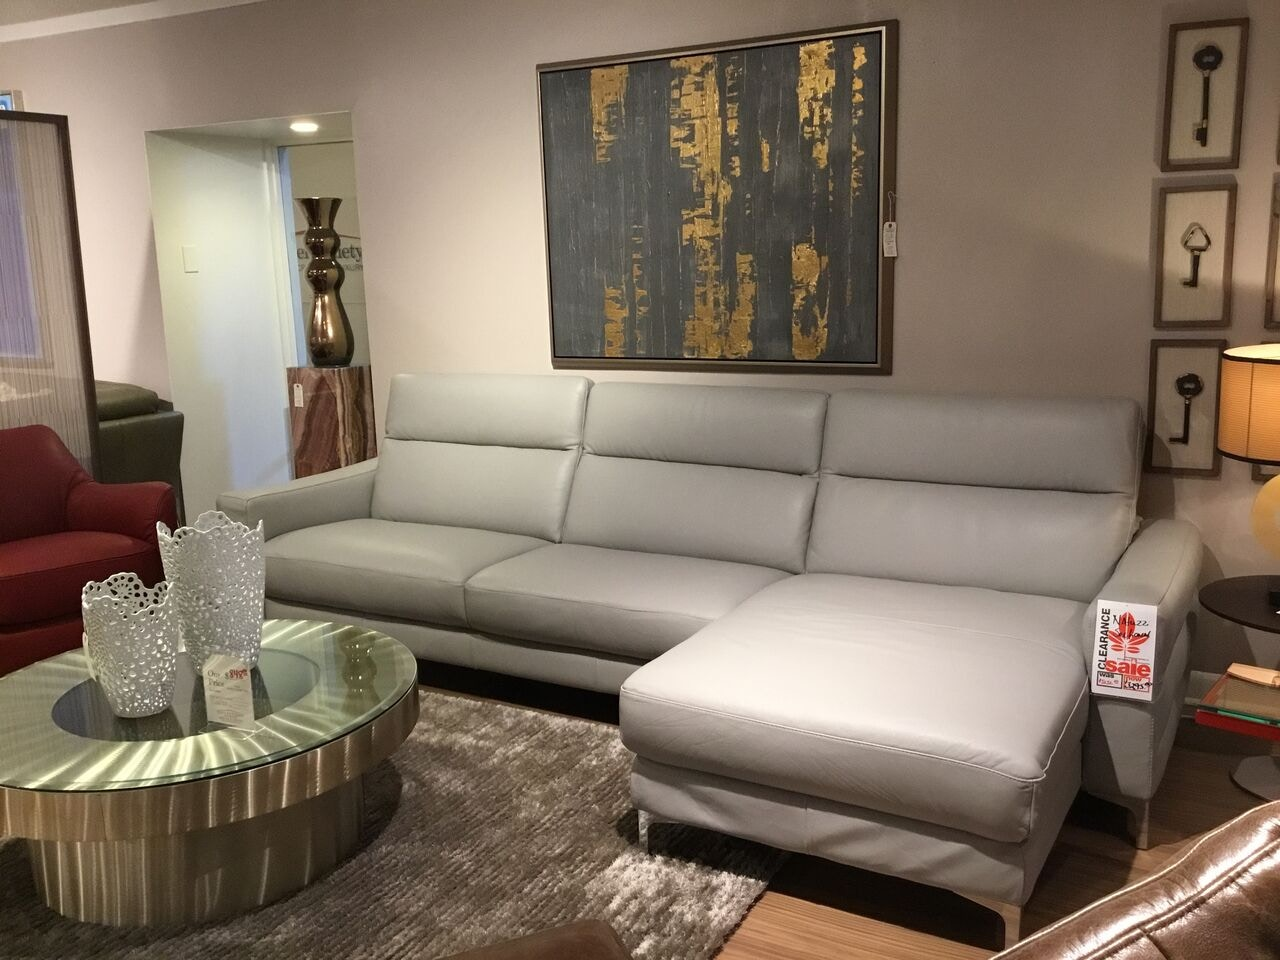 Reflections Furniture Outlet Living Room Natuzzi Leather Sectional (SKU:  B940) Is Available At Hickory Furniture Mart In Hickory, NC And Nationwide.